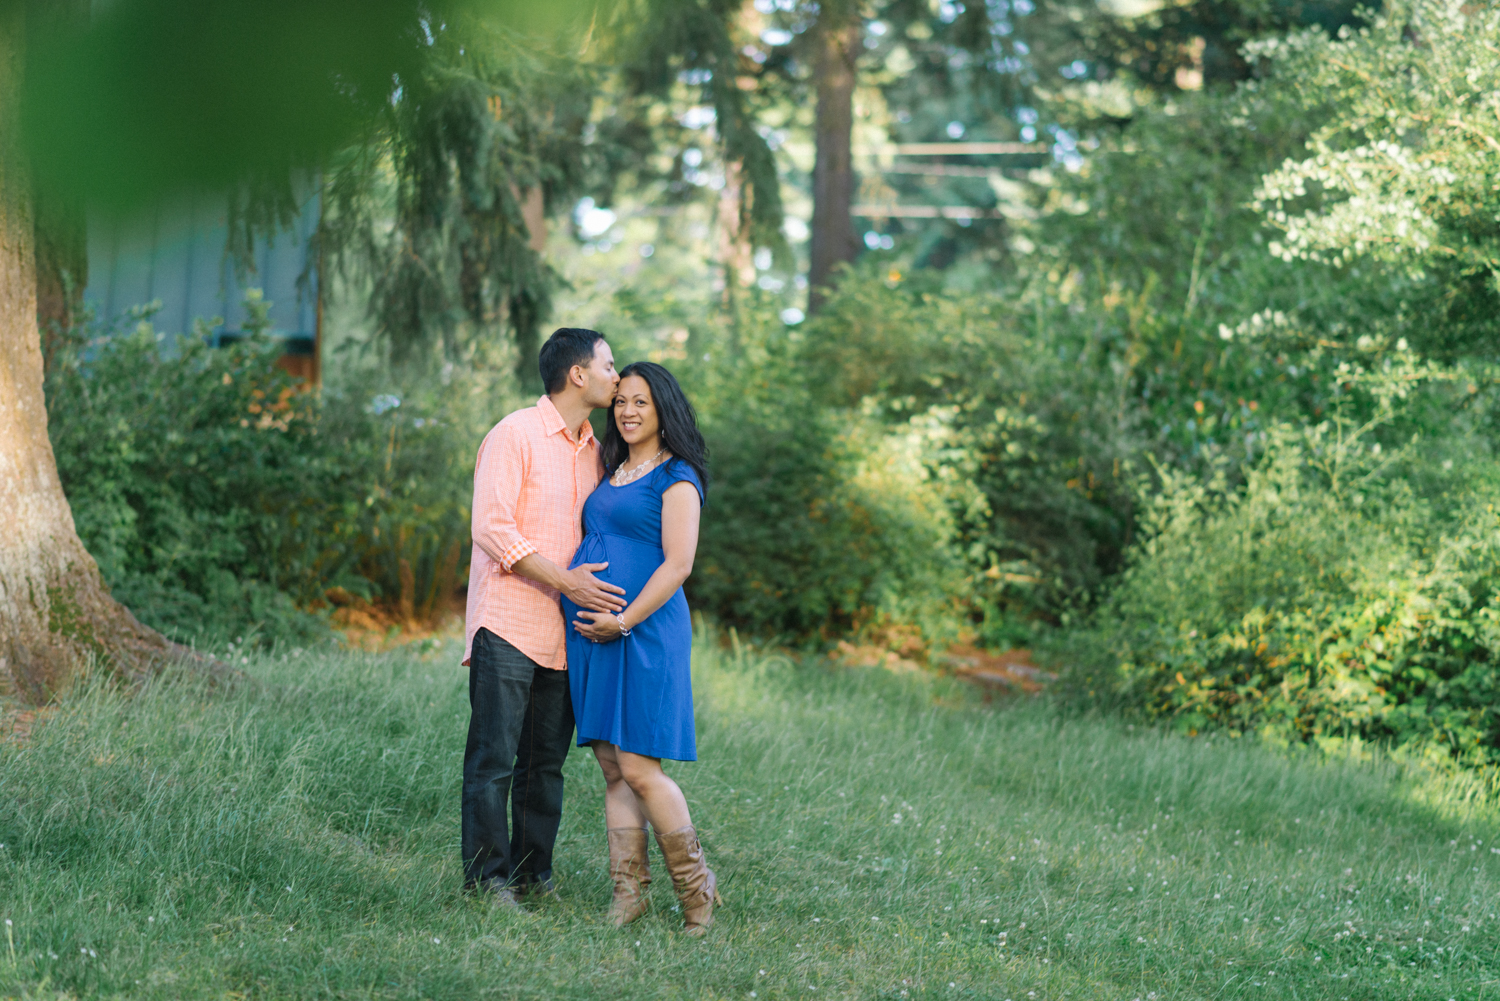 Maternity-Photographer-Portland-Oregon-Couples-Portrait-Hoyt-Arboretum-Washington-Park-Nature-Natural-Light-Shelley-Marie-Photography-3